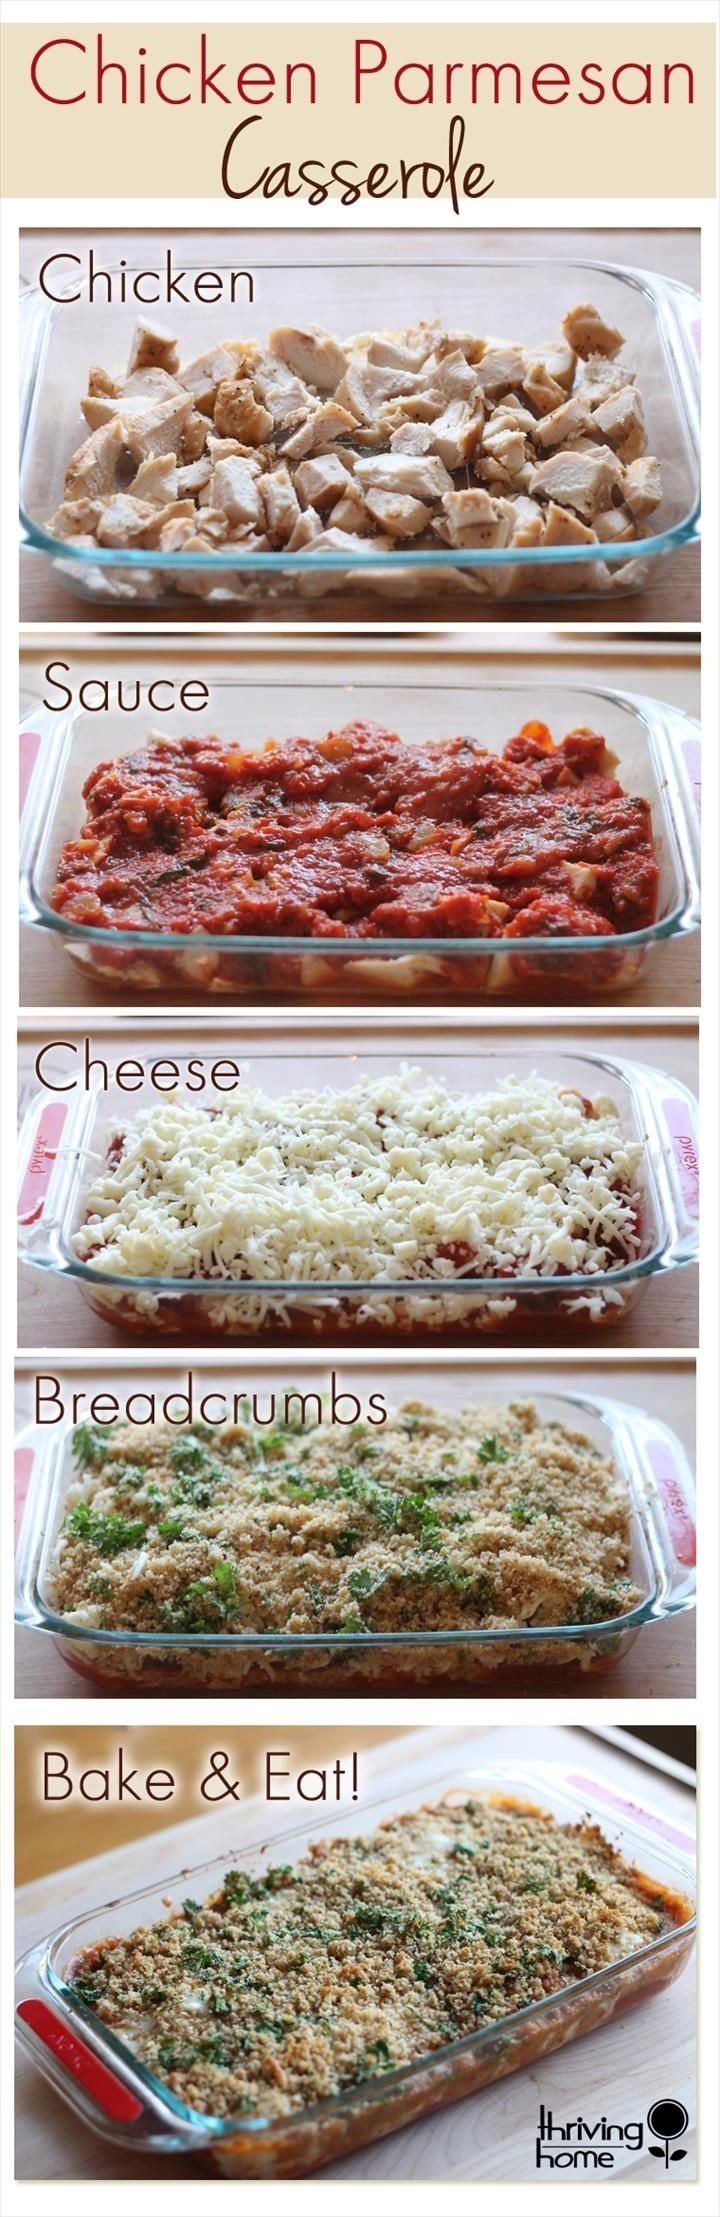 10 Nice Menu Ideas For Large Groups 88 party food ideas for large groups cheap meals for feeding 2021